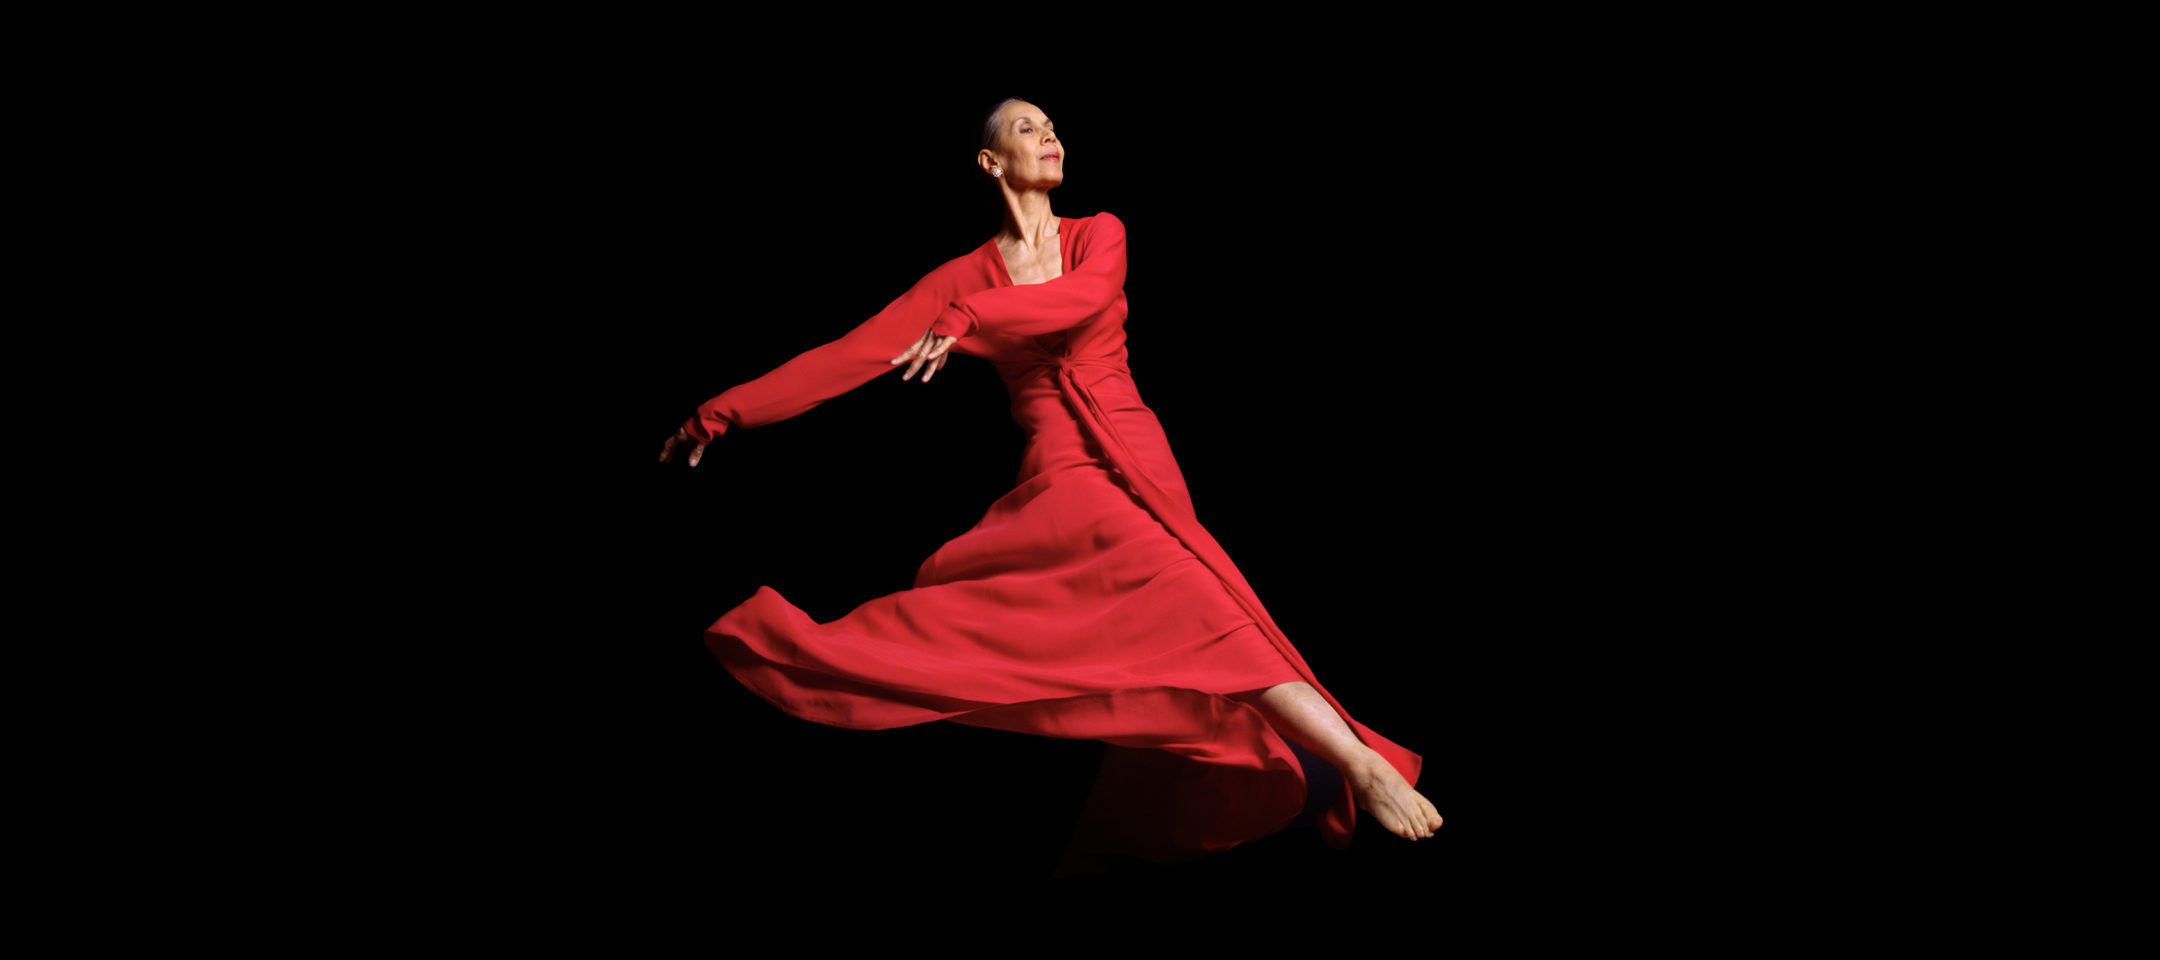 An older woman dances in a flowing red dress, appearing as if she's floating through space. Her face is turned to the right and she wears an expression of calm and fulfillment.